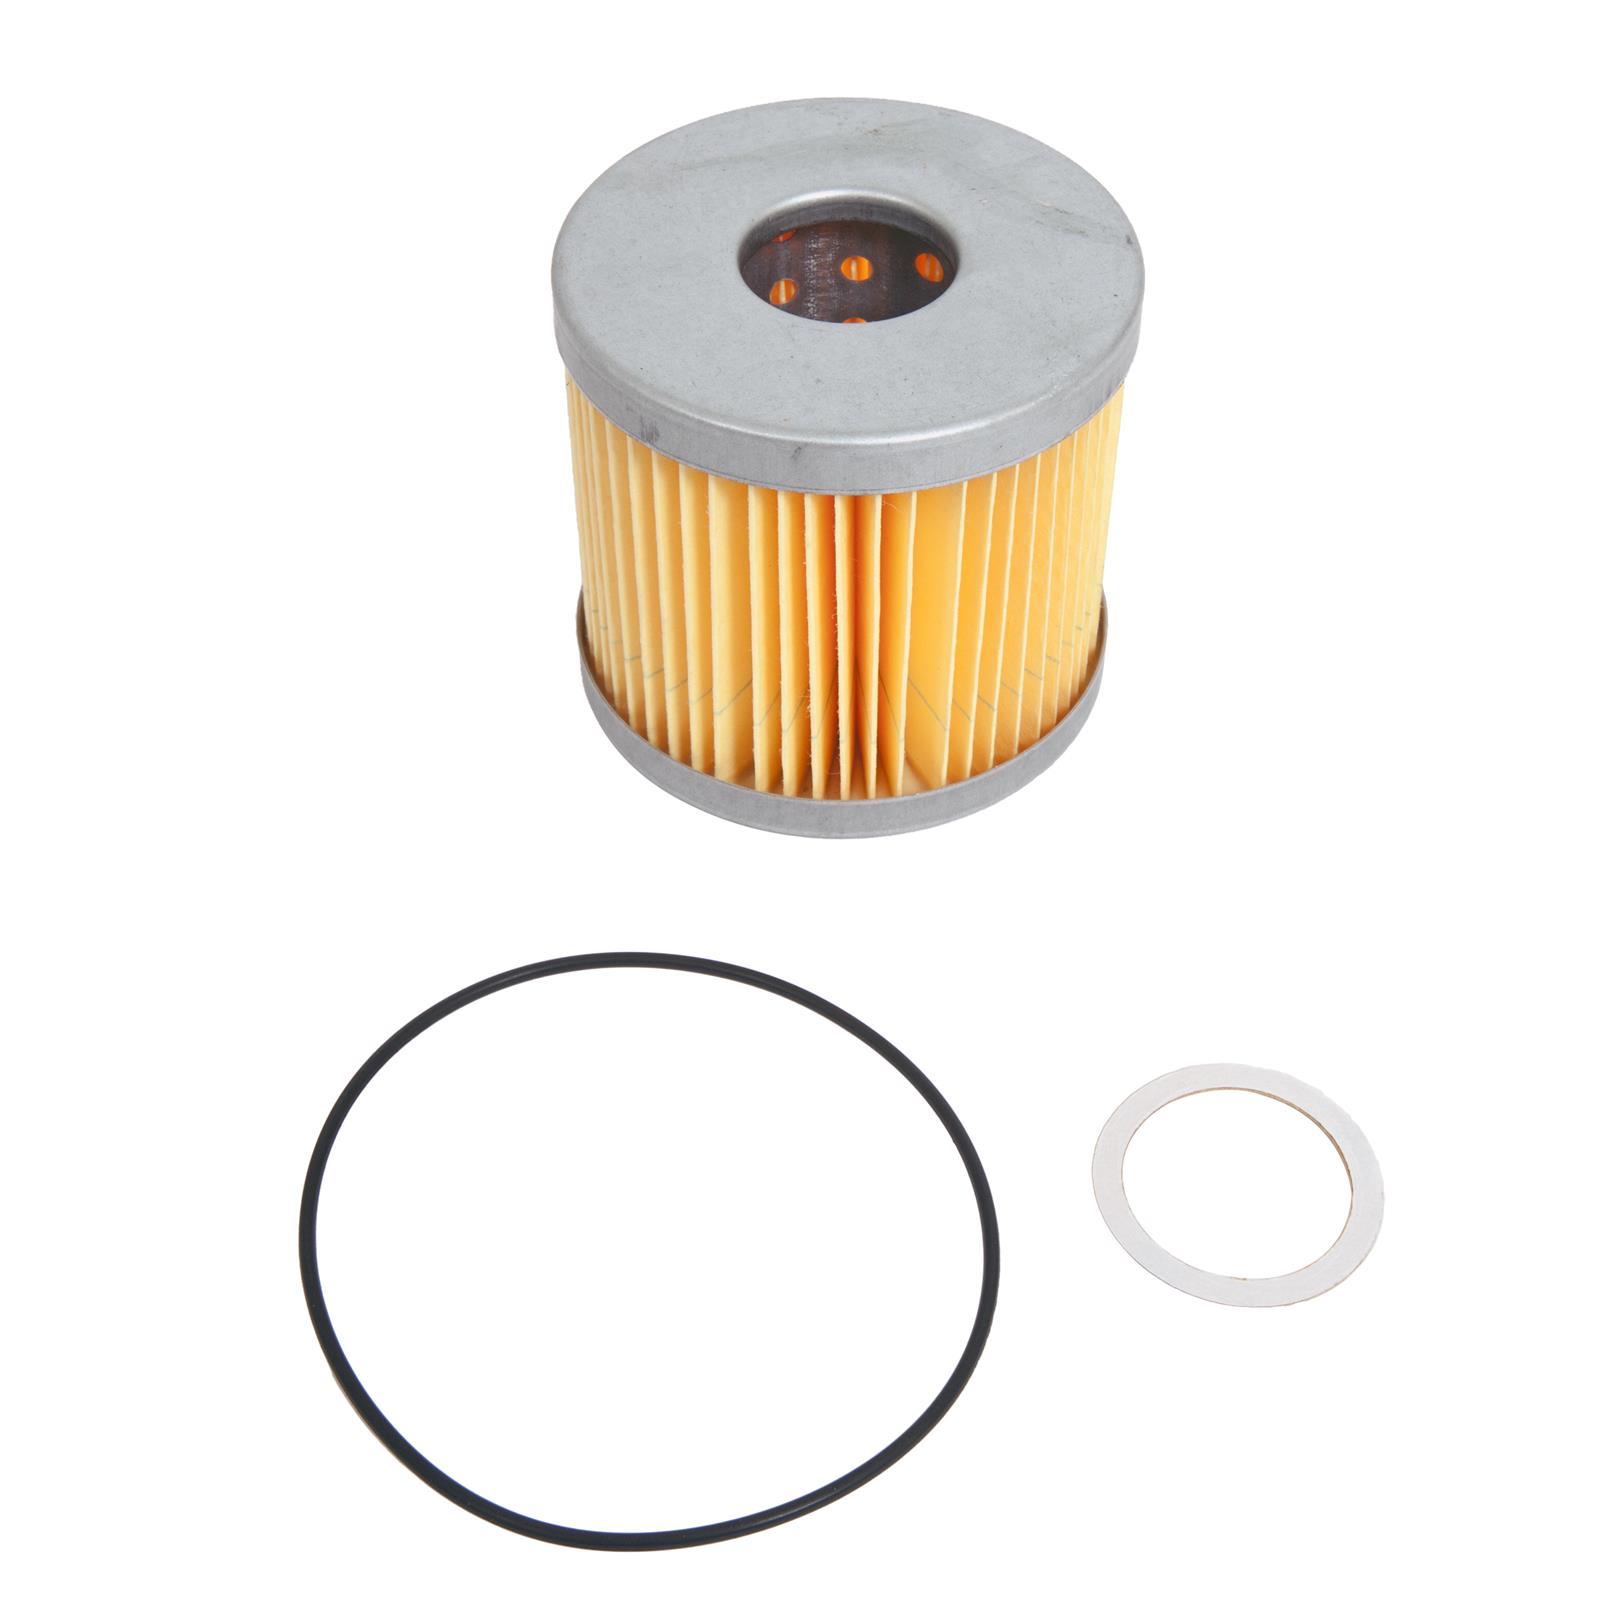 hight resolution of mallory replacement fuel filter elements 29238 free shipping on orders over 99 at summit racing